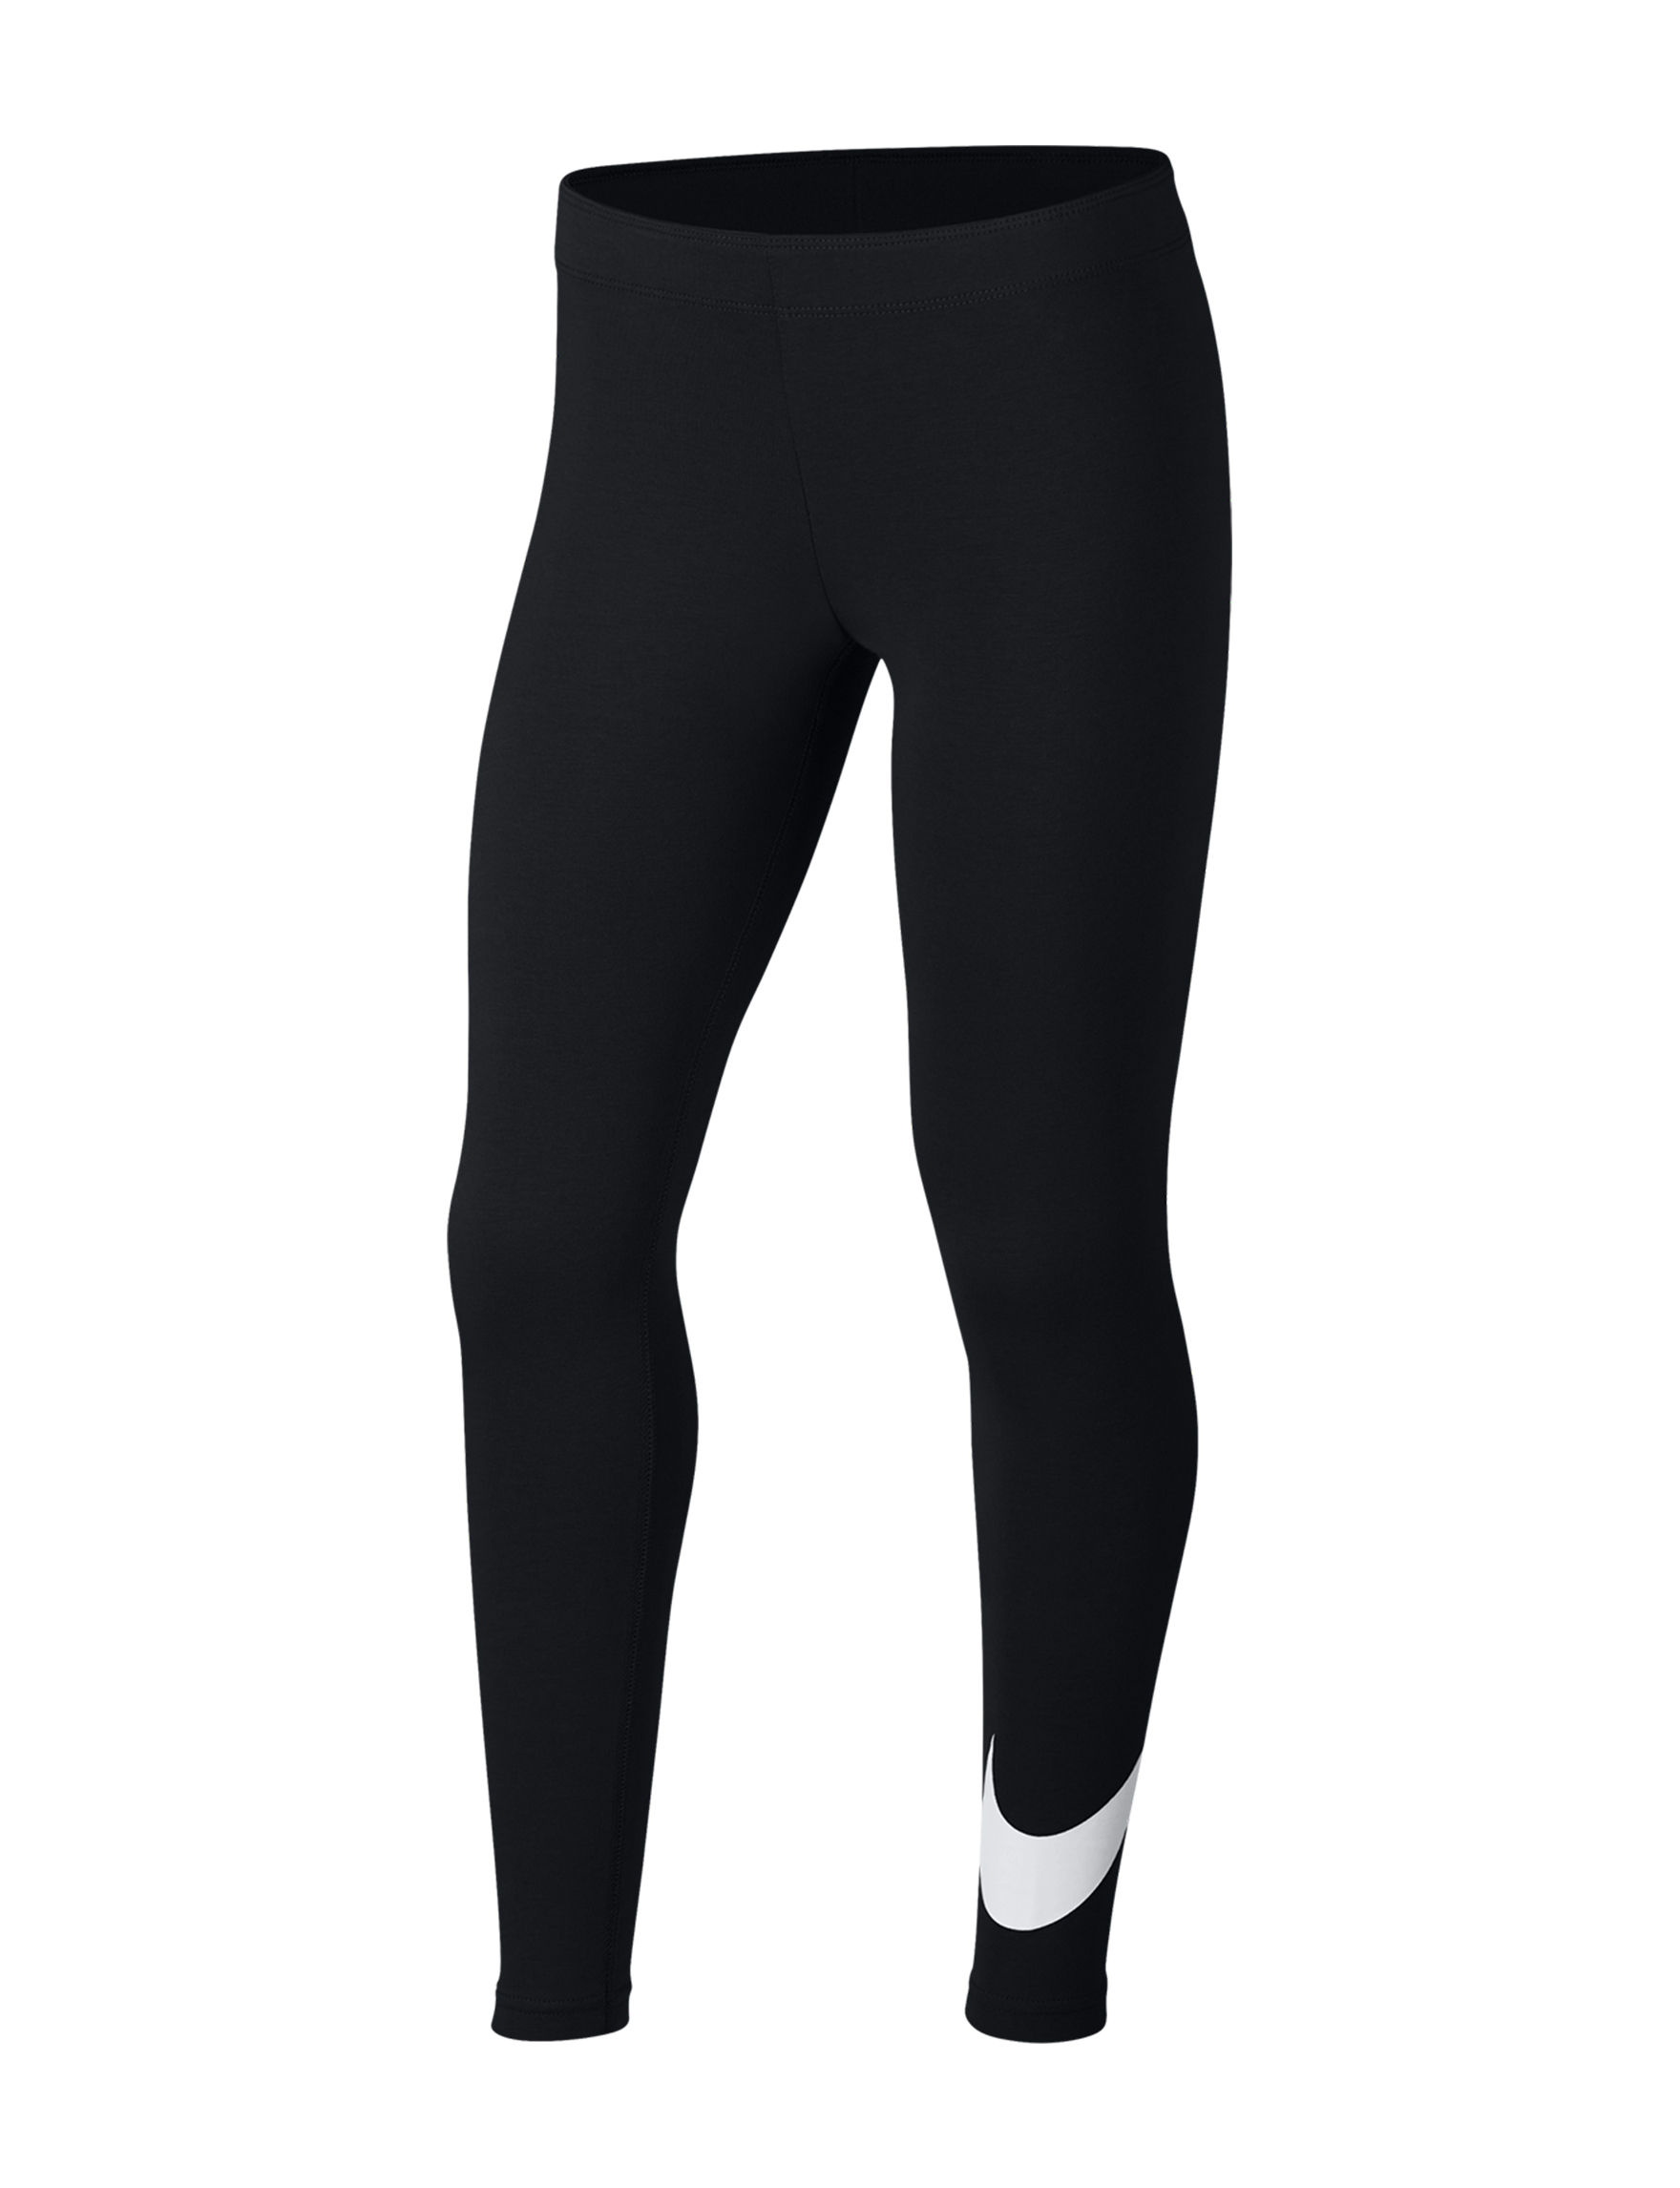 Nike Black Leggings